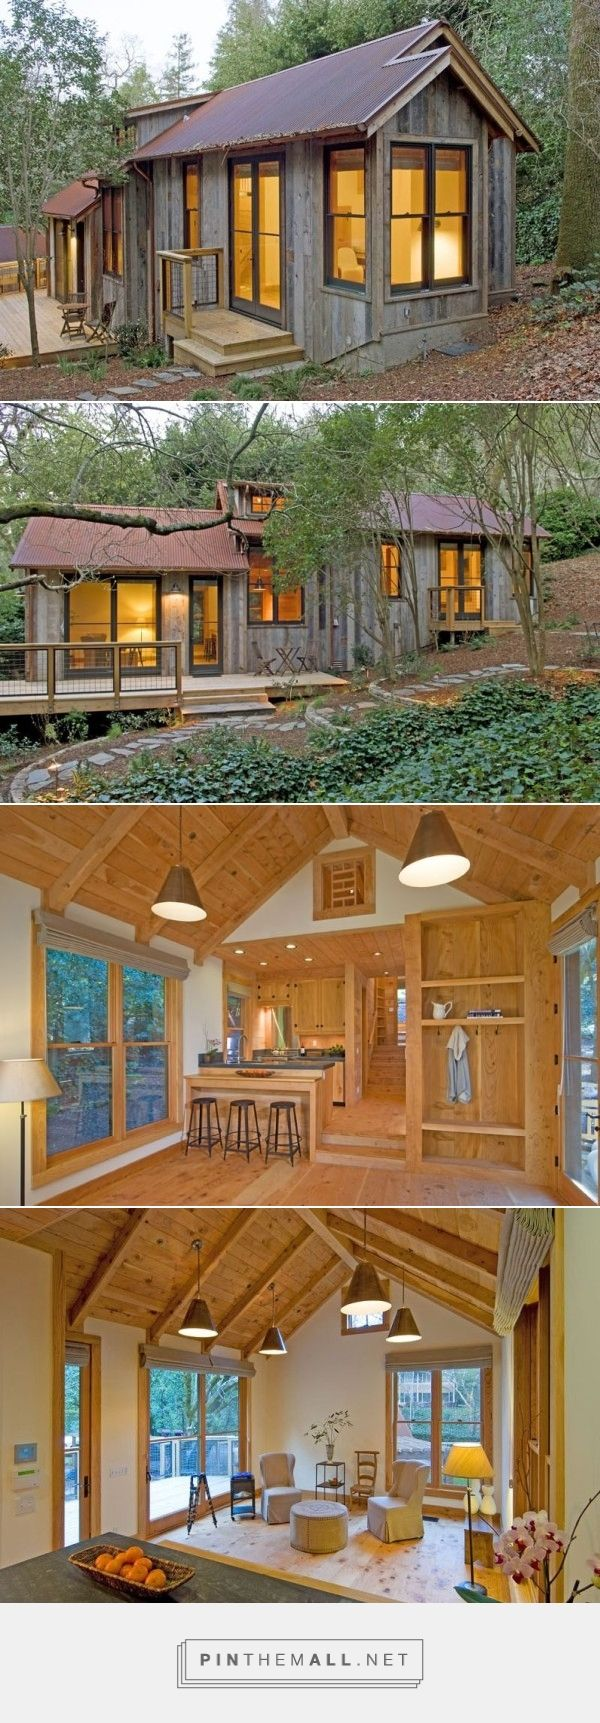 Tiny Log Home Designs: 3697 Best Images About Lovely Small Homes And Cottages On